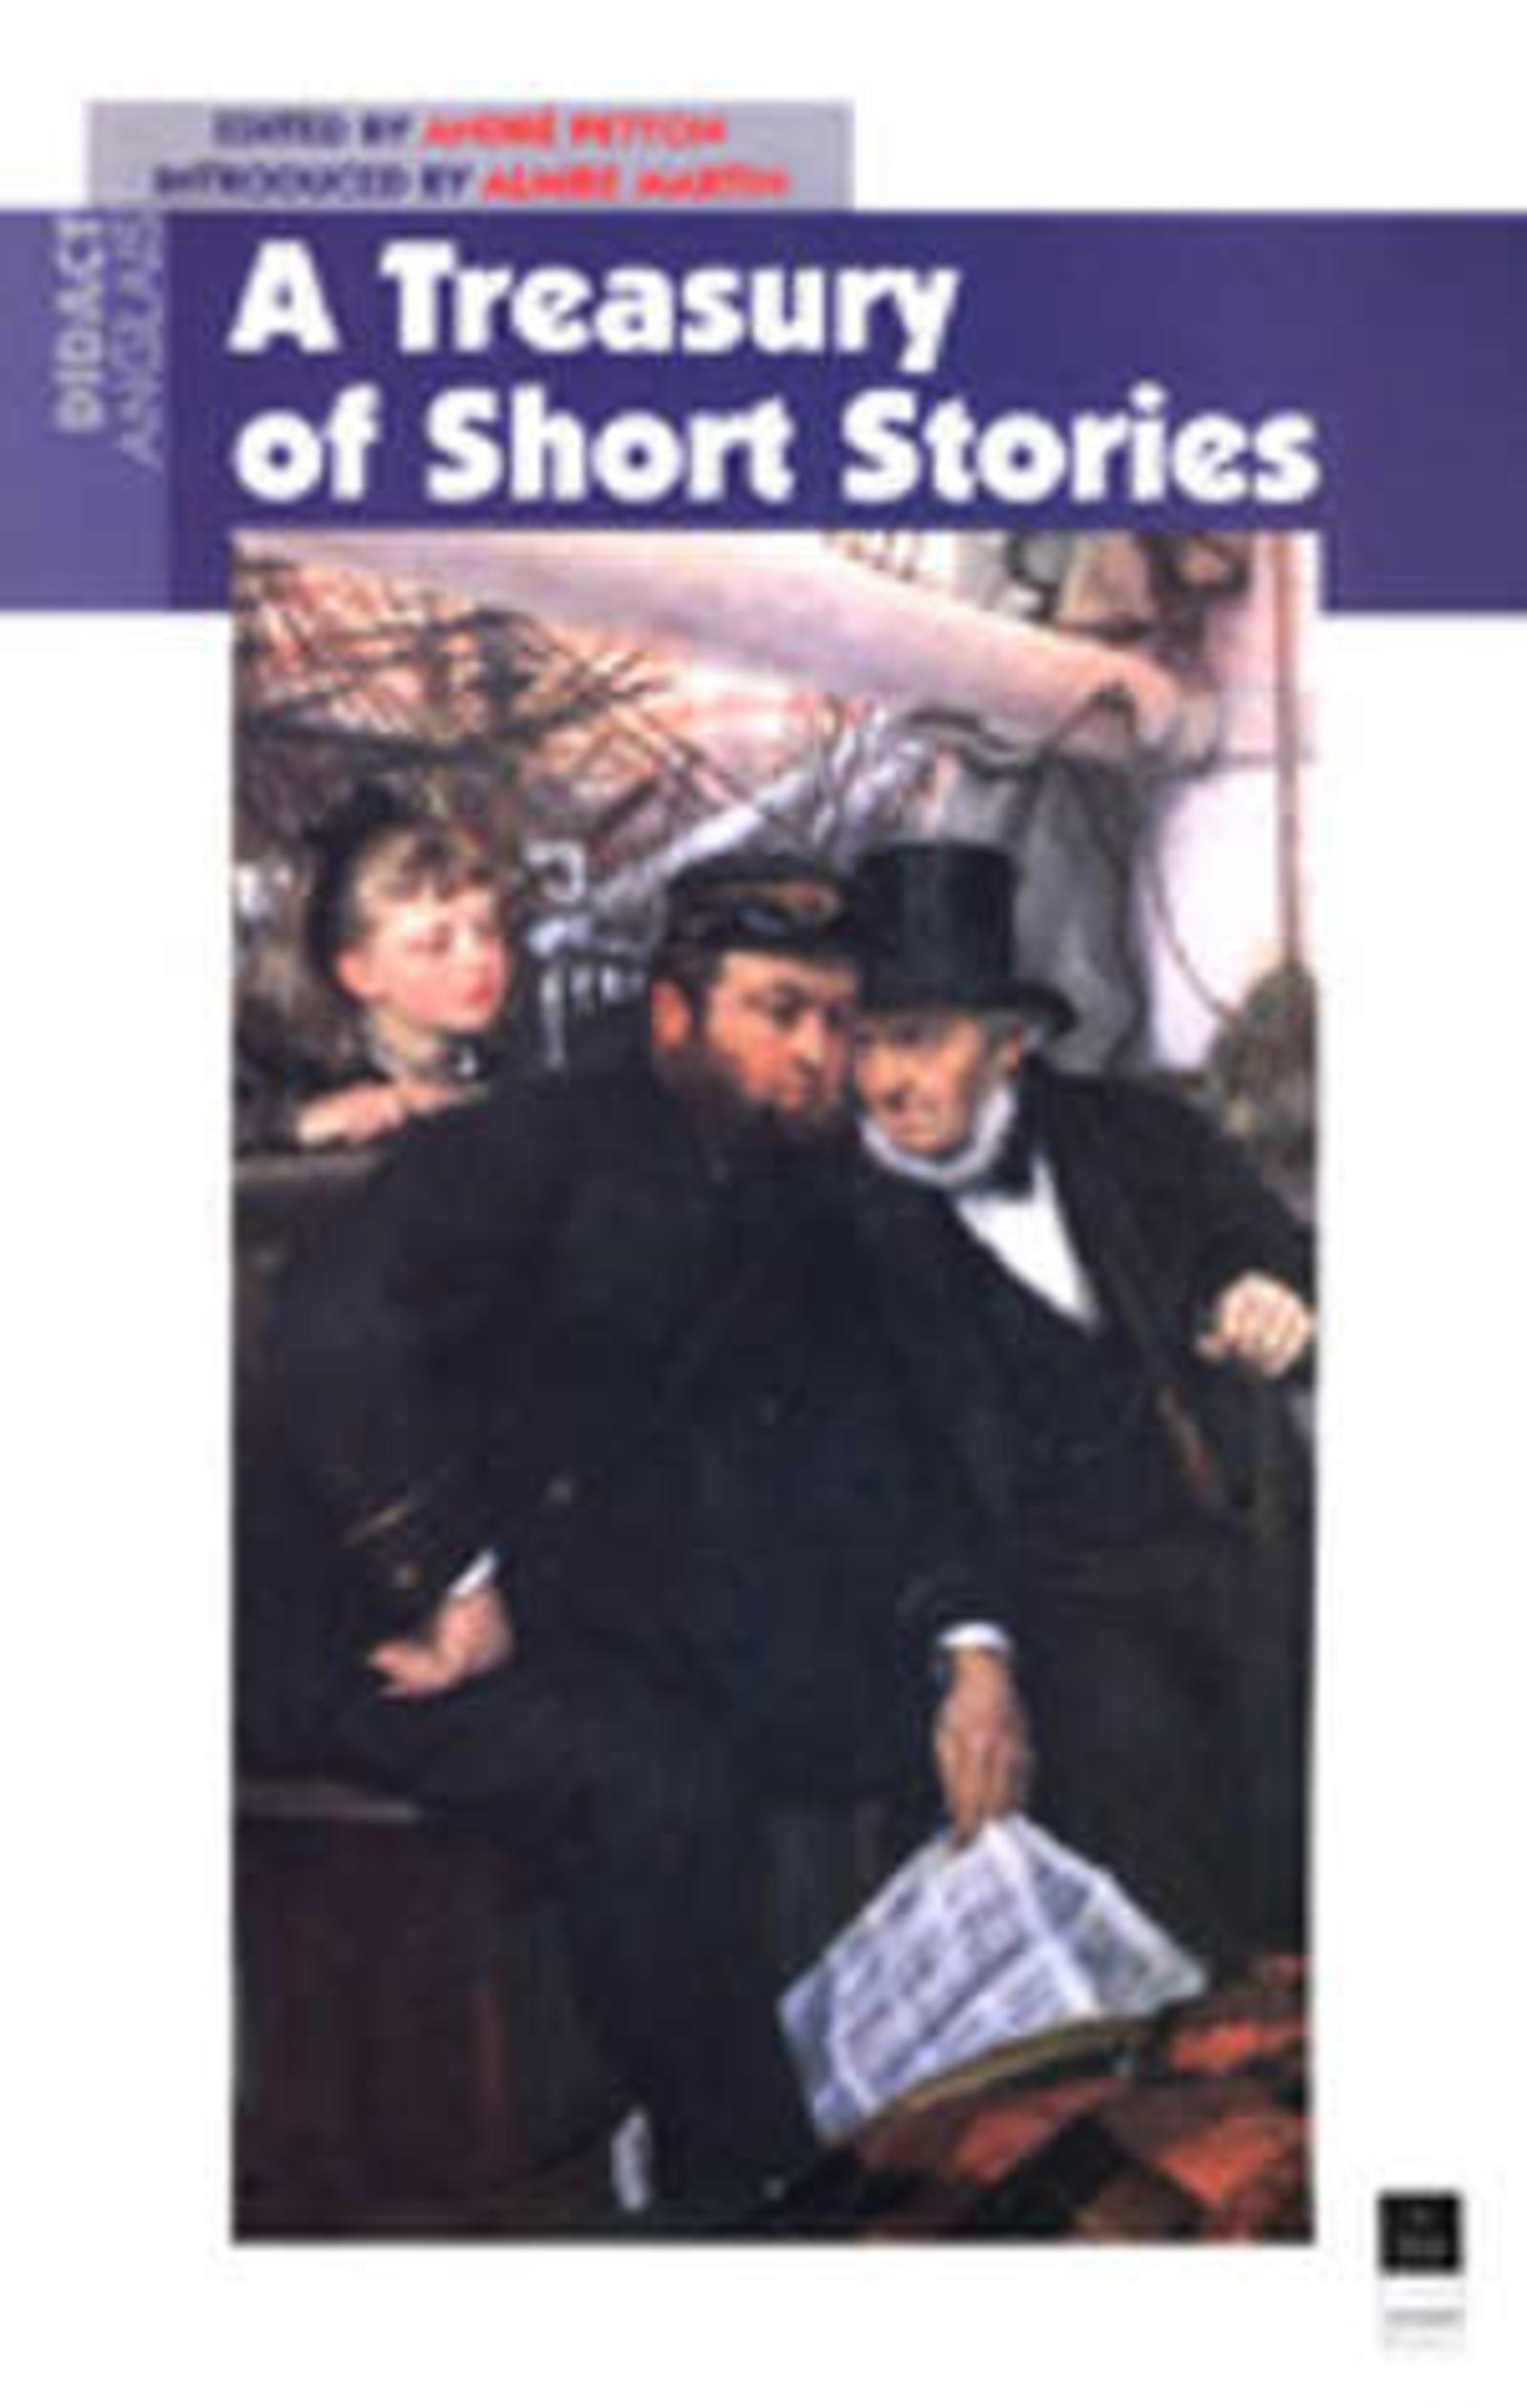 A TREASURY OF SHORT STORIES